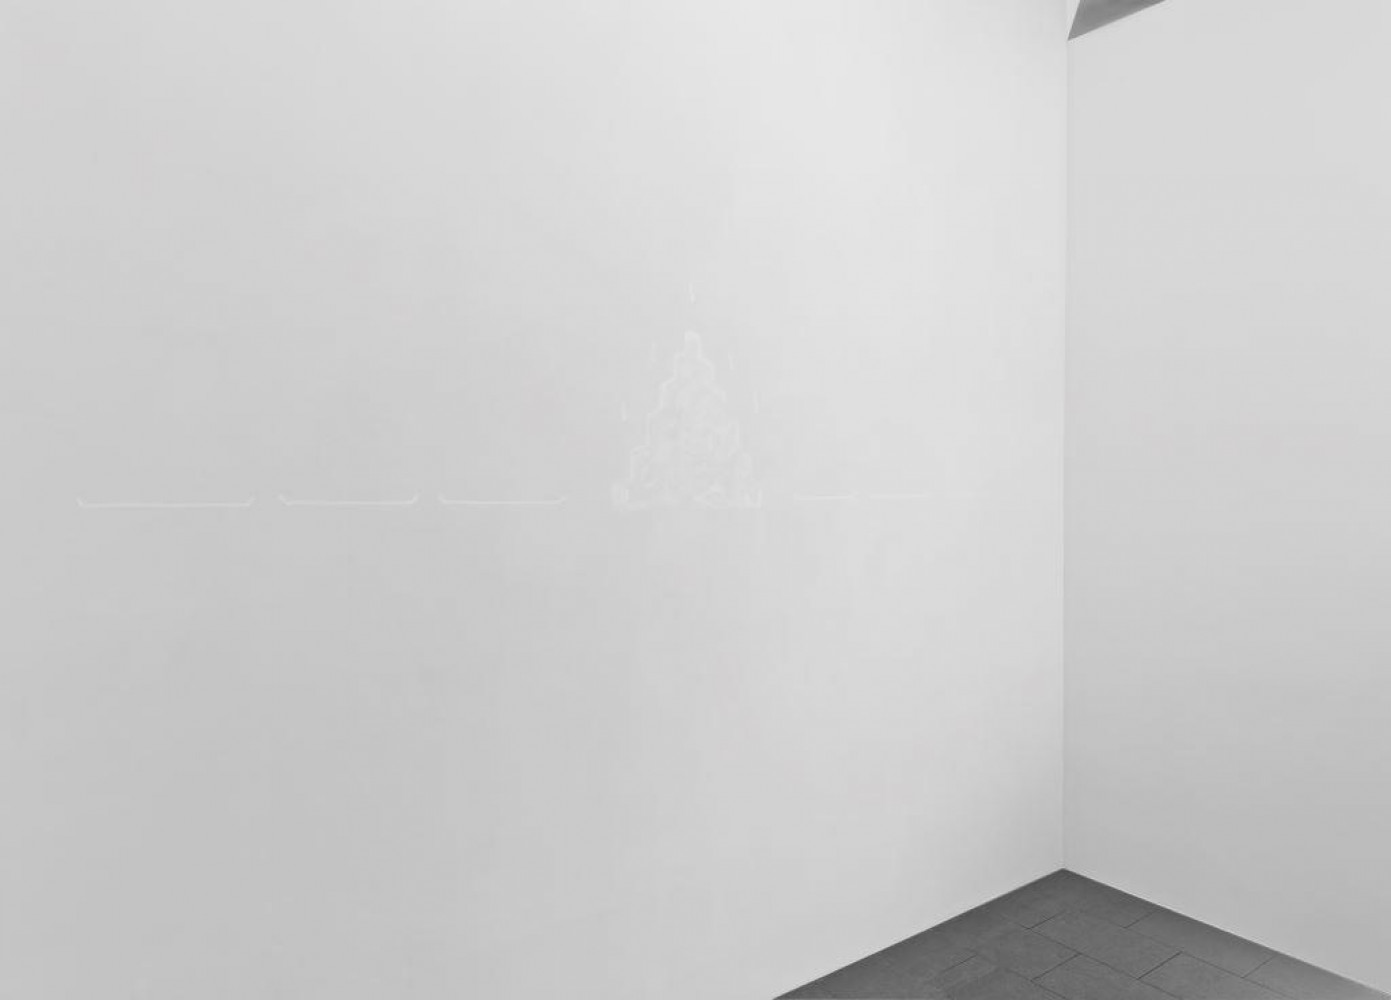 Wolfgang Laib, 'The known and the unknown', 2013